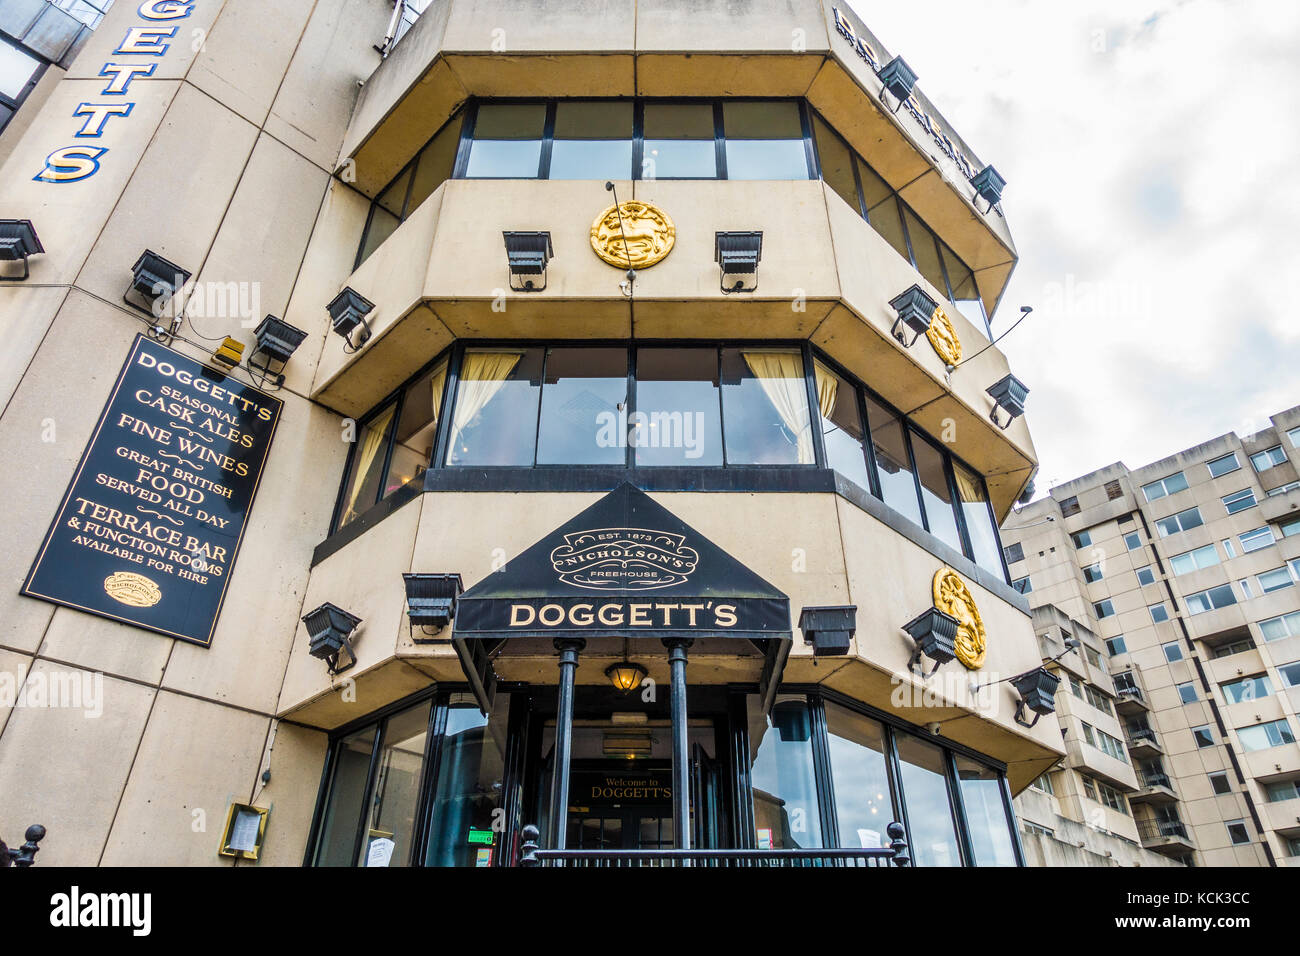 Doggett's Coat & Badge pub, with multiple floors and roof terrace, next to Blackfriars Bridge and overlooking - Stock Image